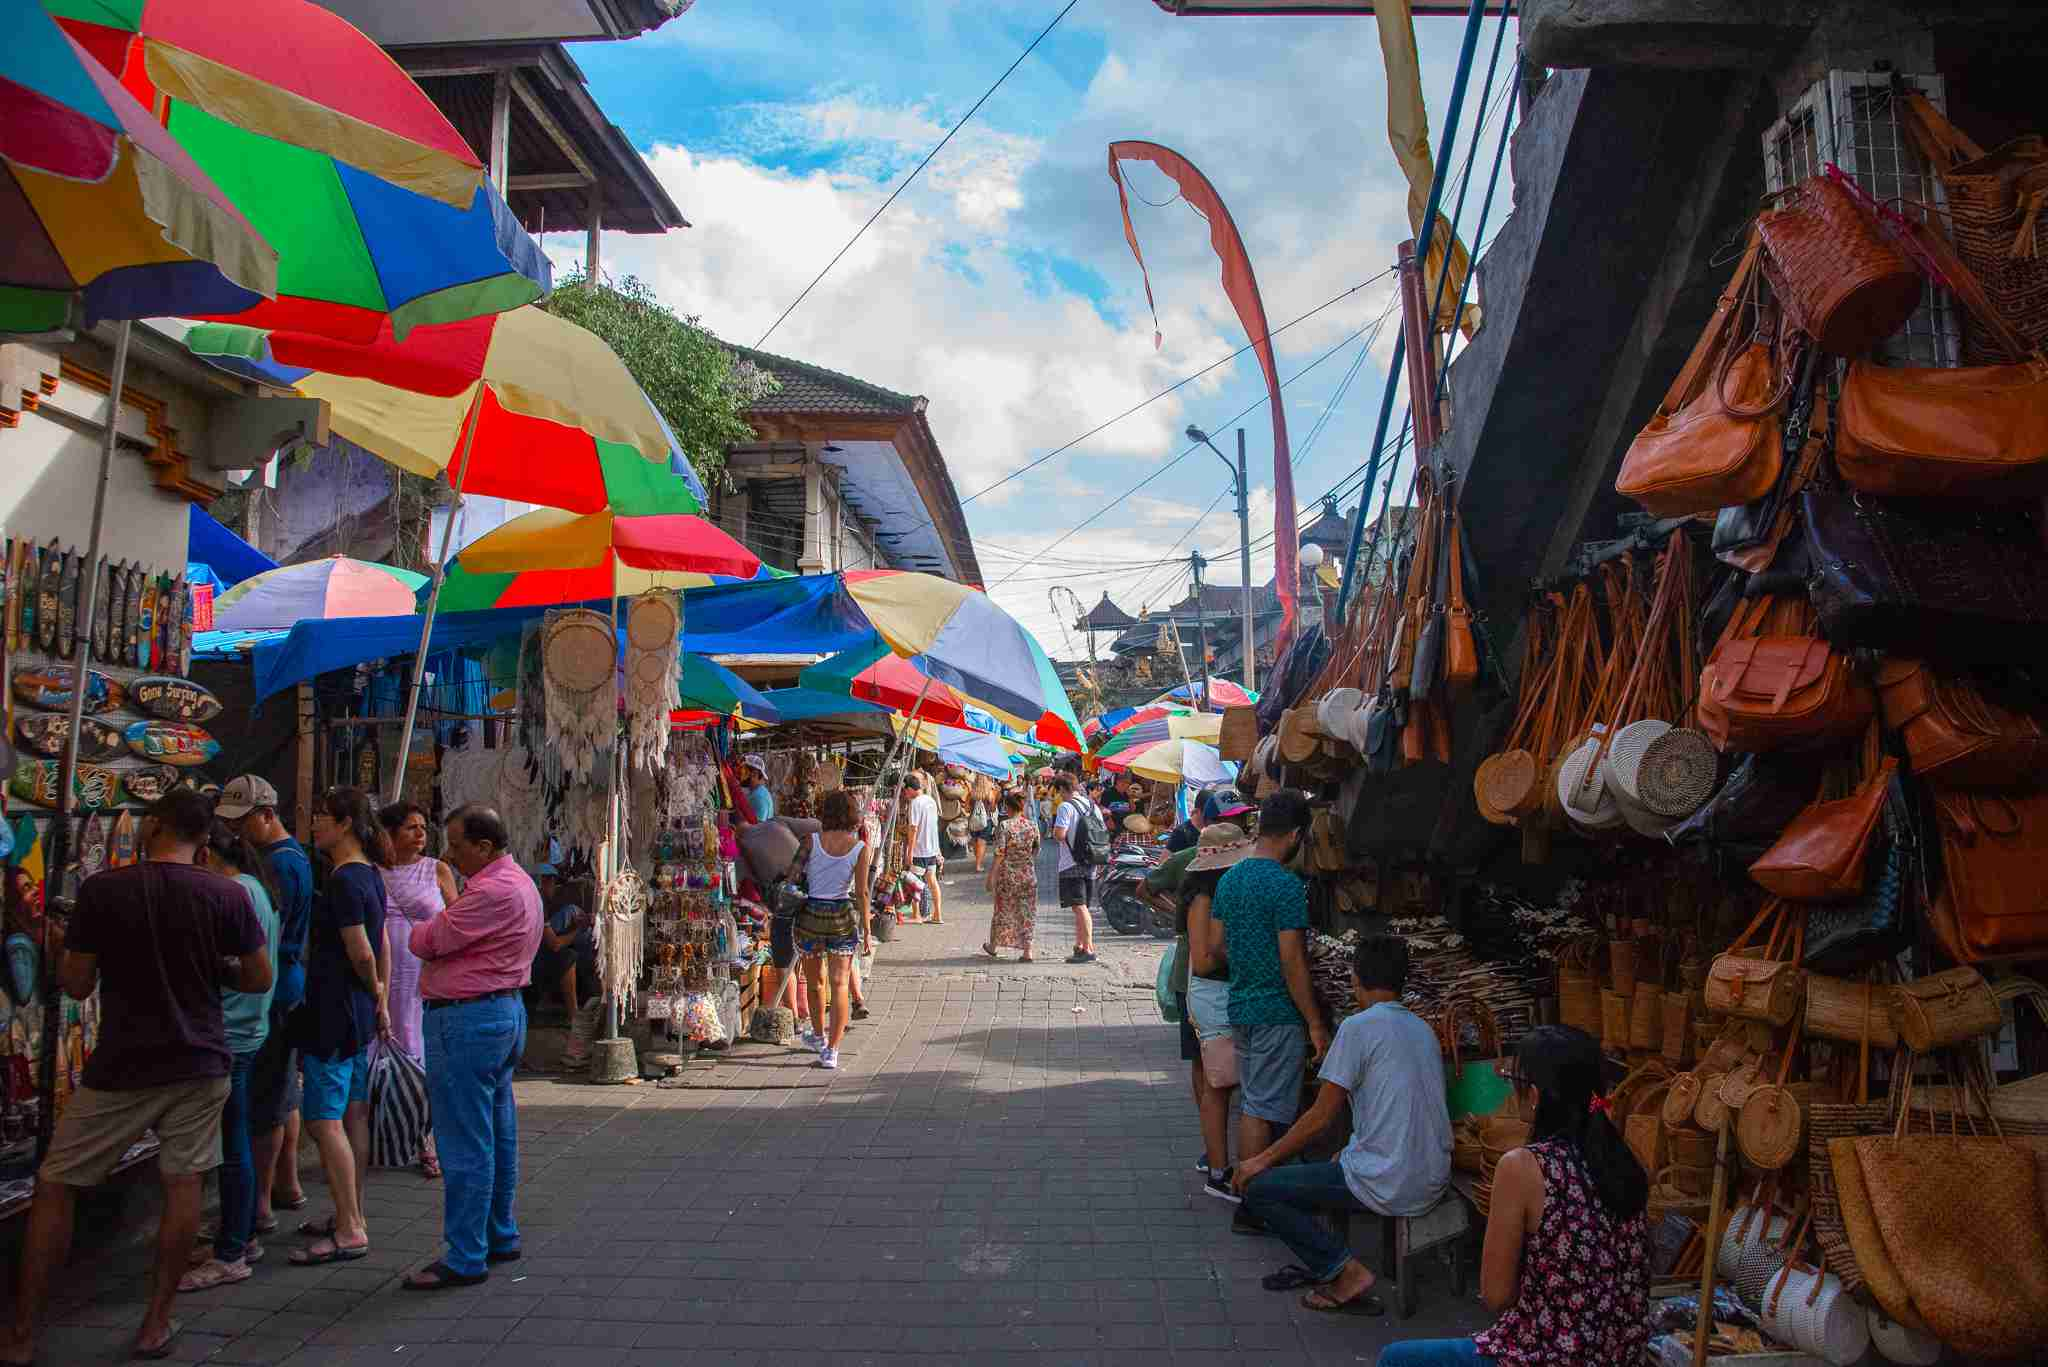 Ubud Bali Tips: What to Know Before Going to Ubud